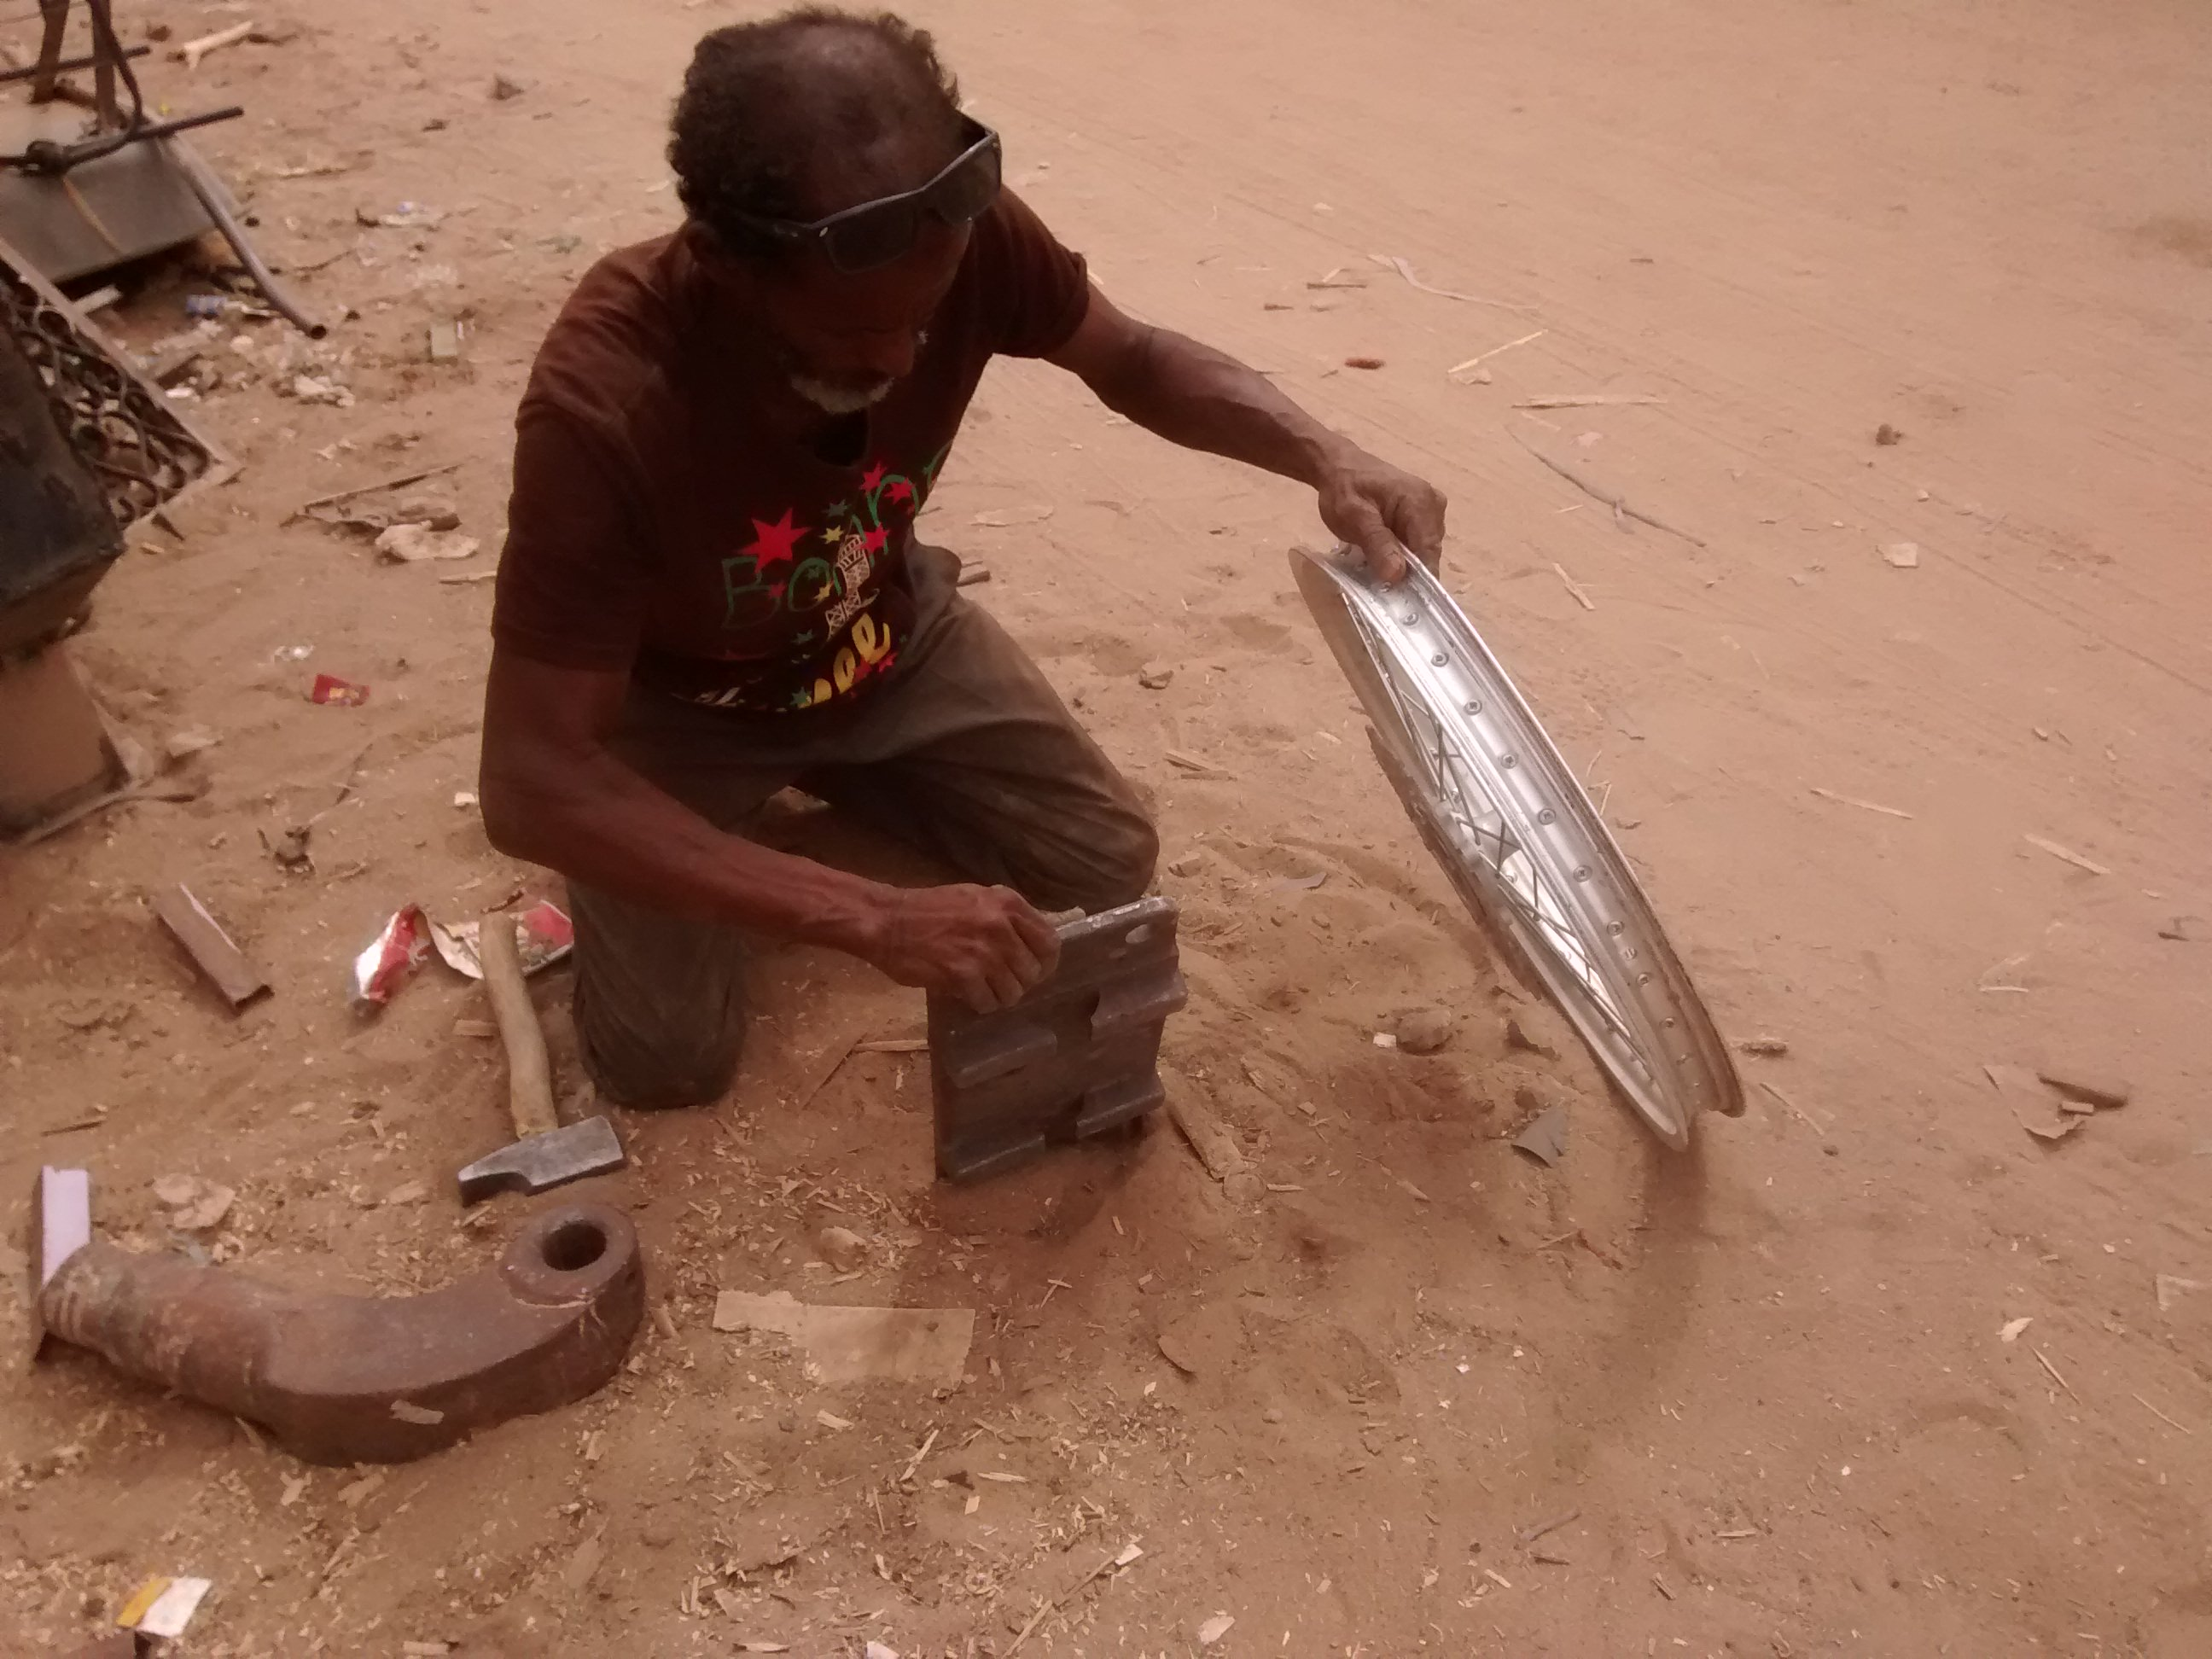 Blacksmith in Atar, Mauritania, working out dent and flat spot on front rim.